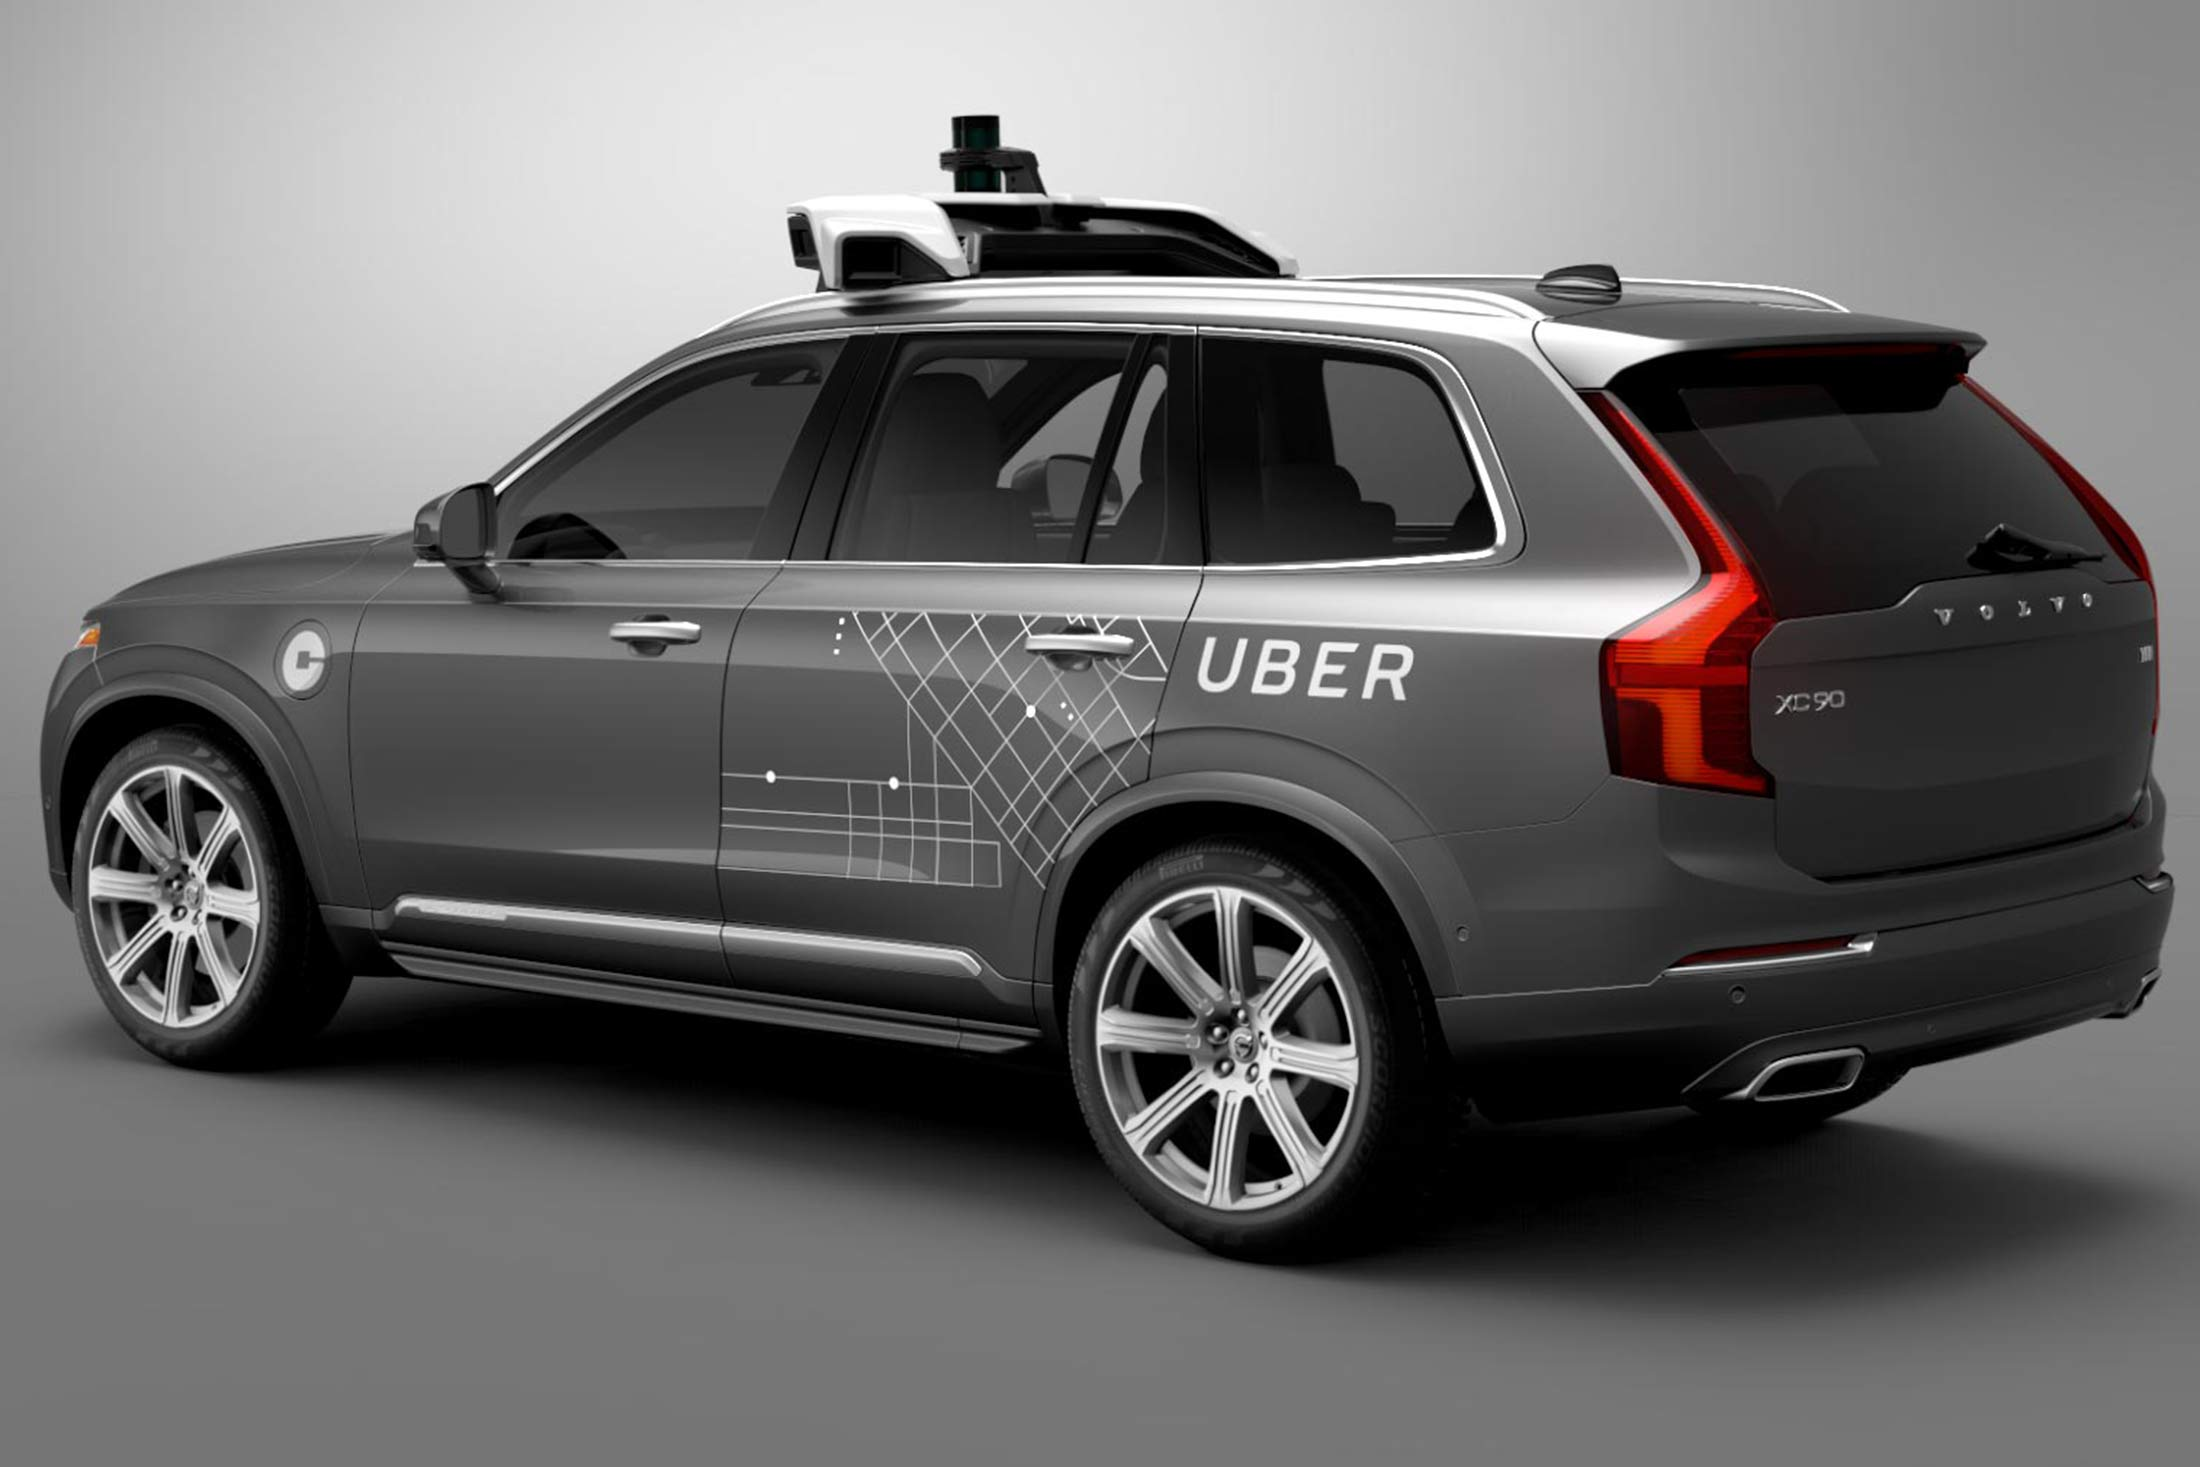 State regulators demand Uber halt self-driving vehicle program, threaten legal action